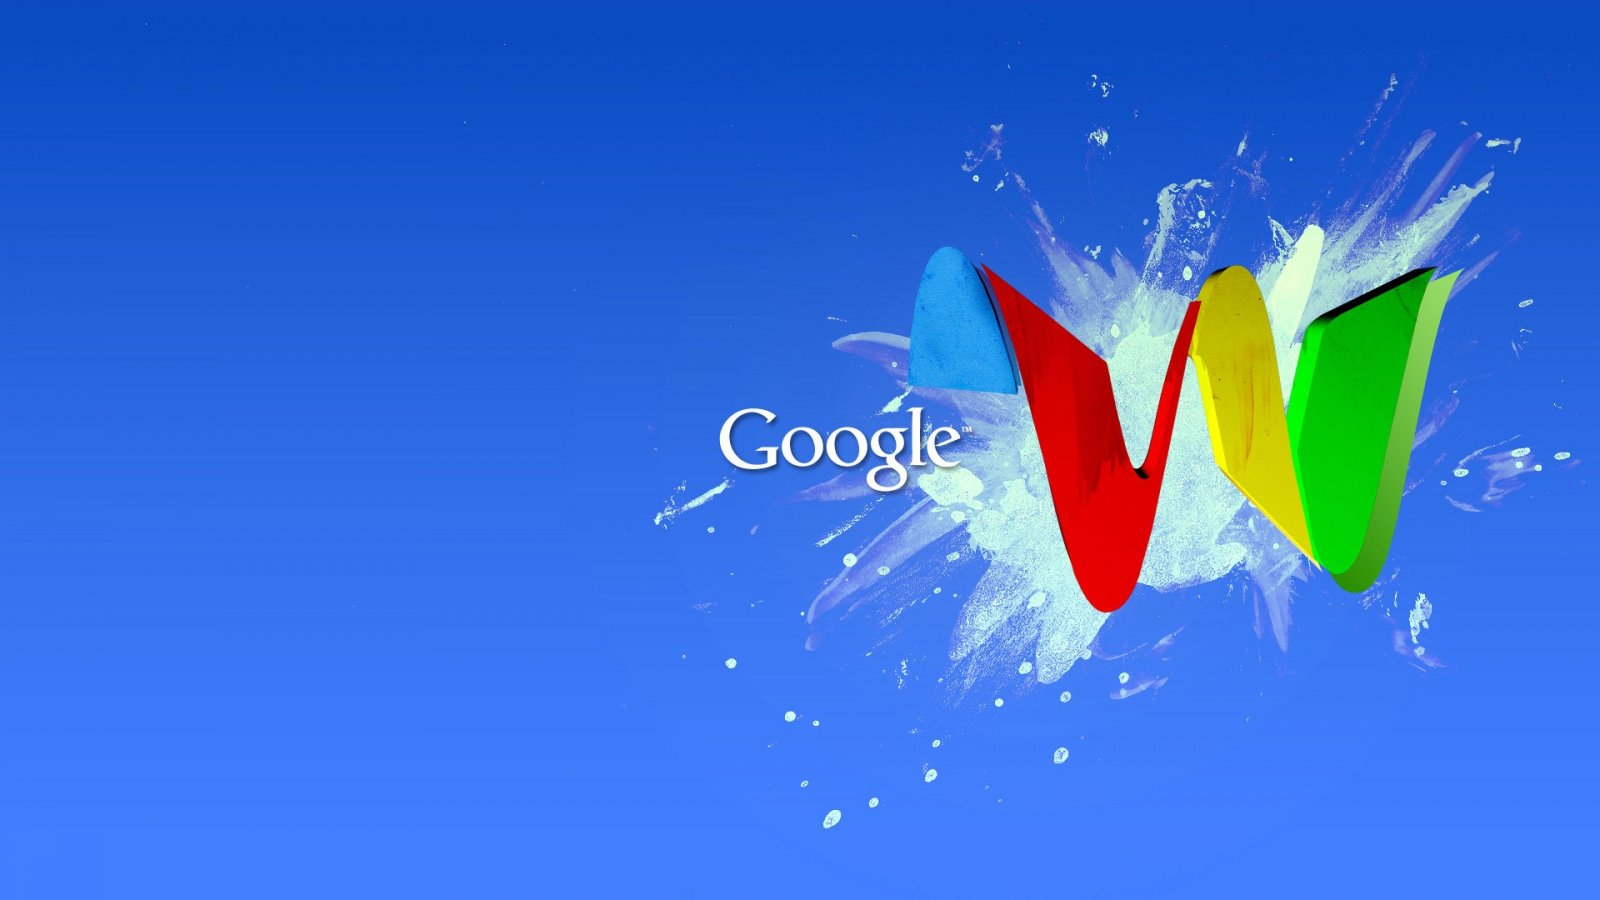 Google Chrome Wallpaper Themes 1600x900